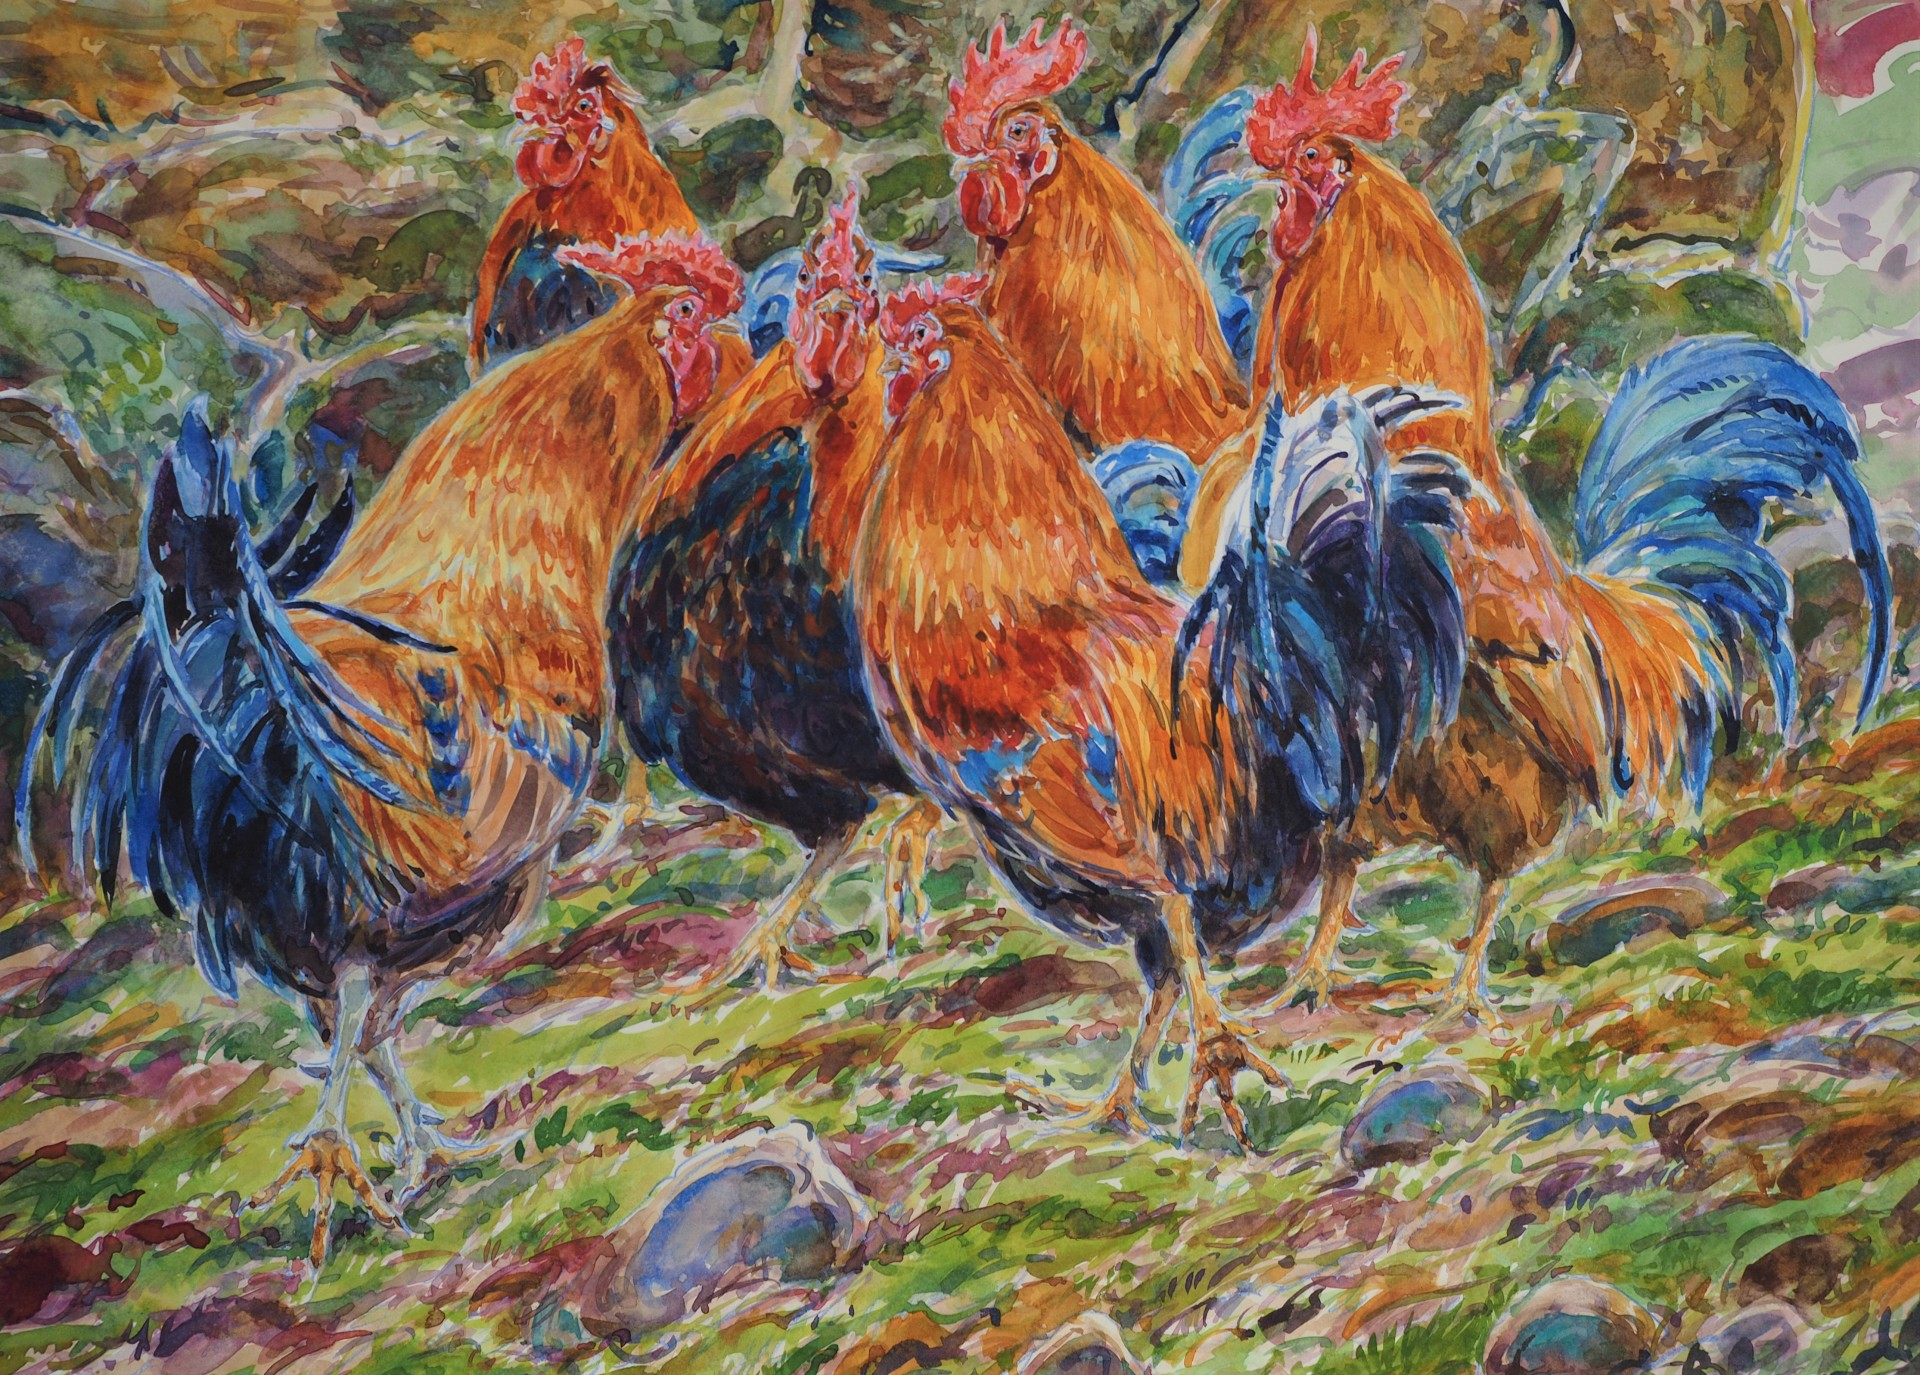 Cockerel Group